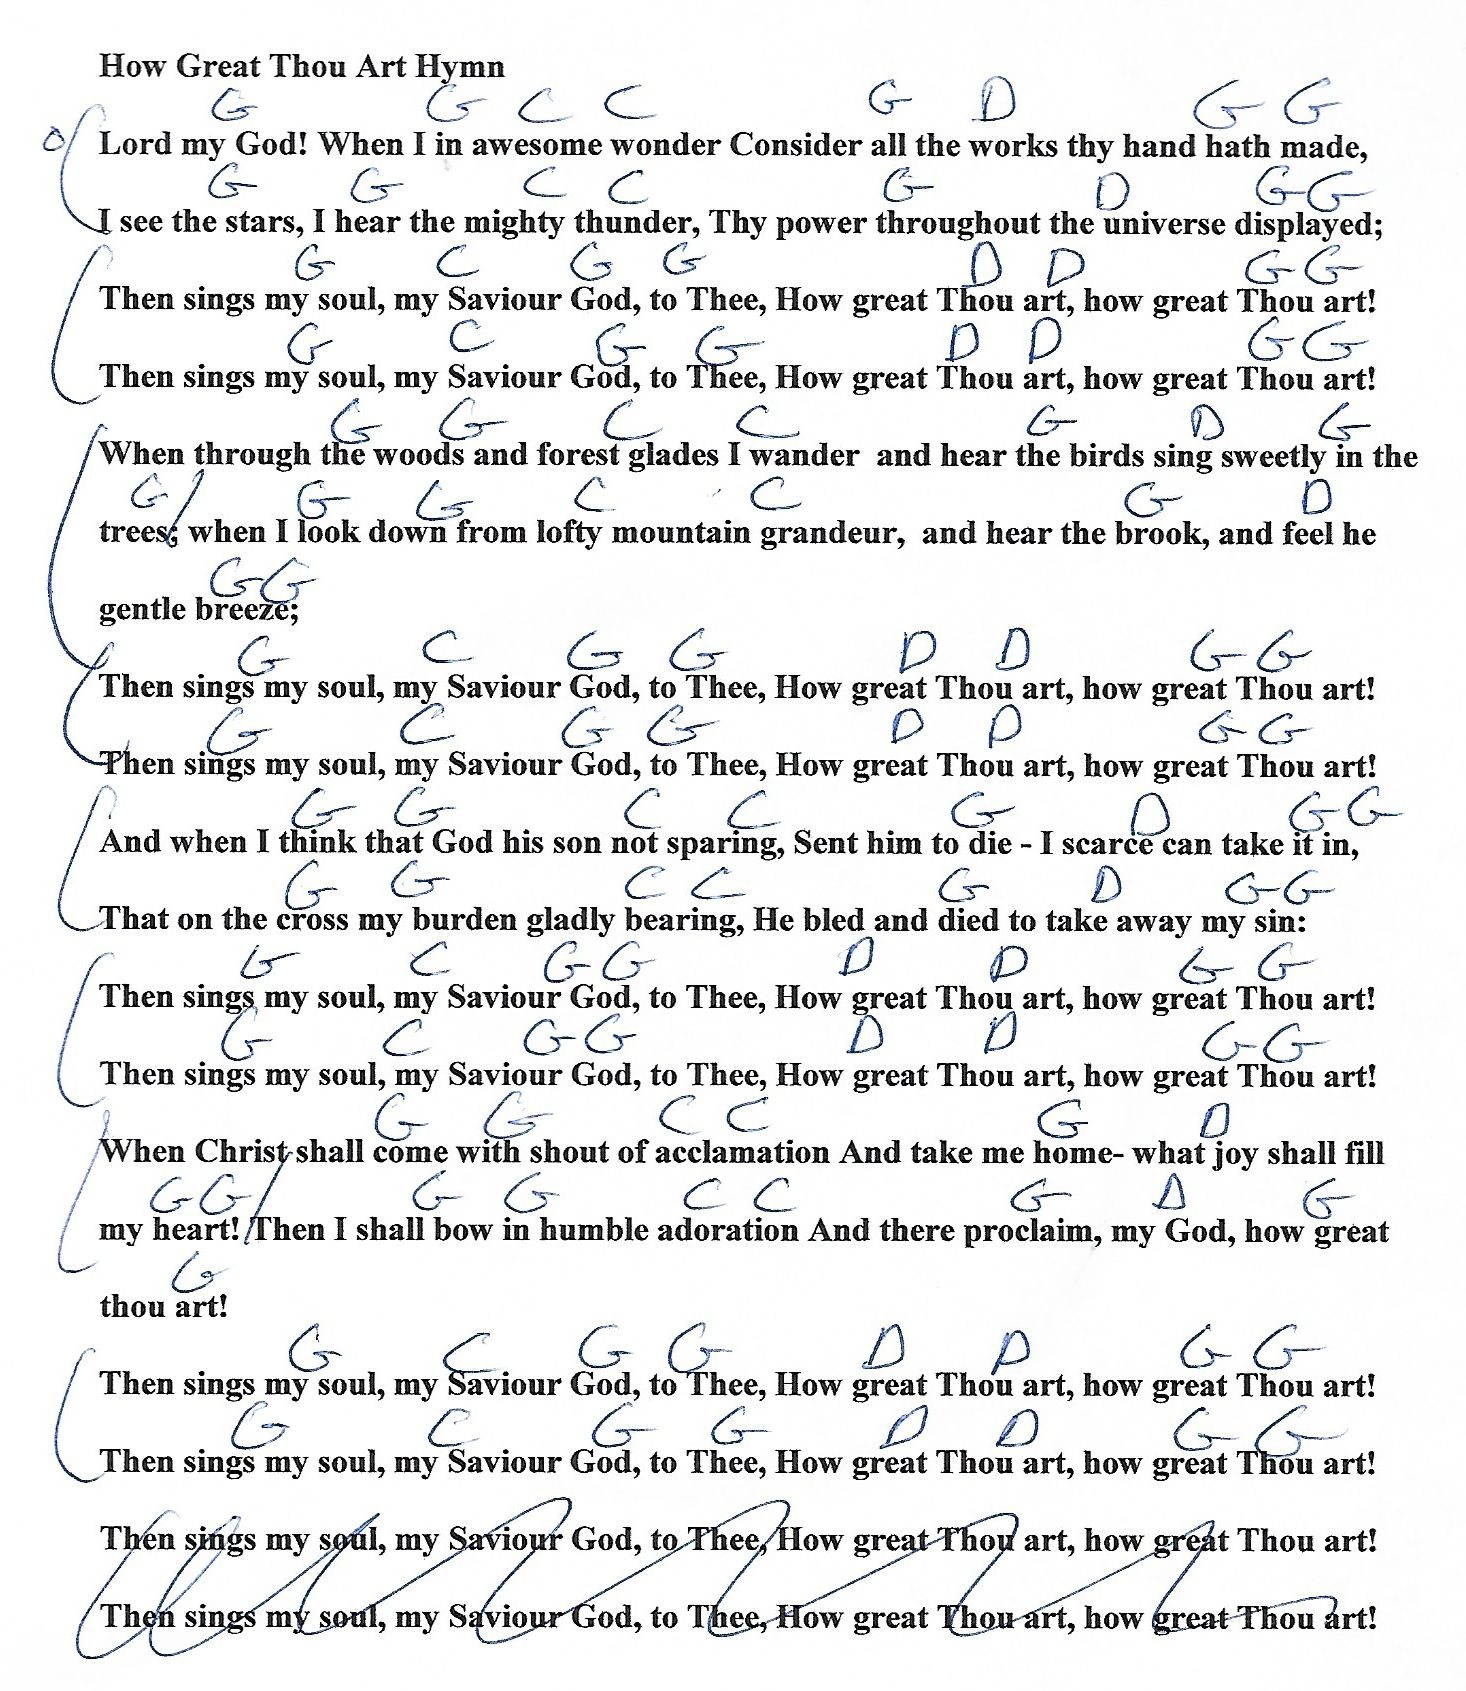 How Great Thou Art Hymn G Major Guitar Chord Chart With Lyrics